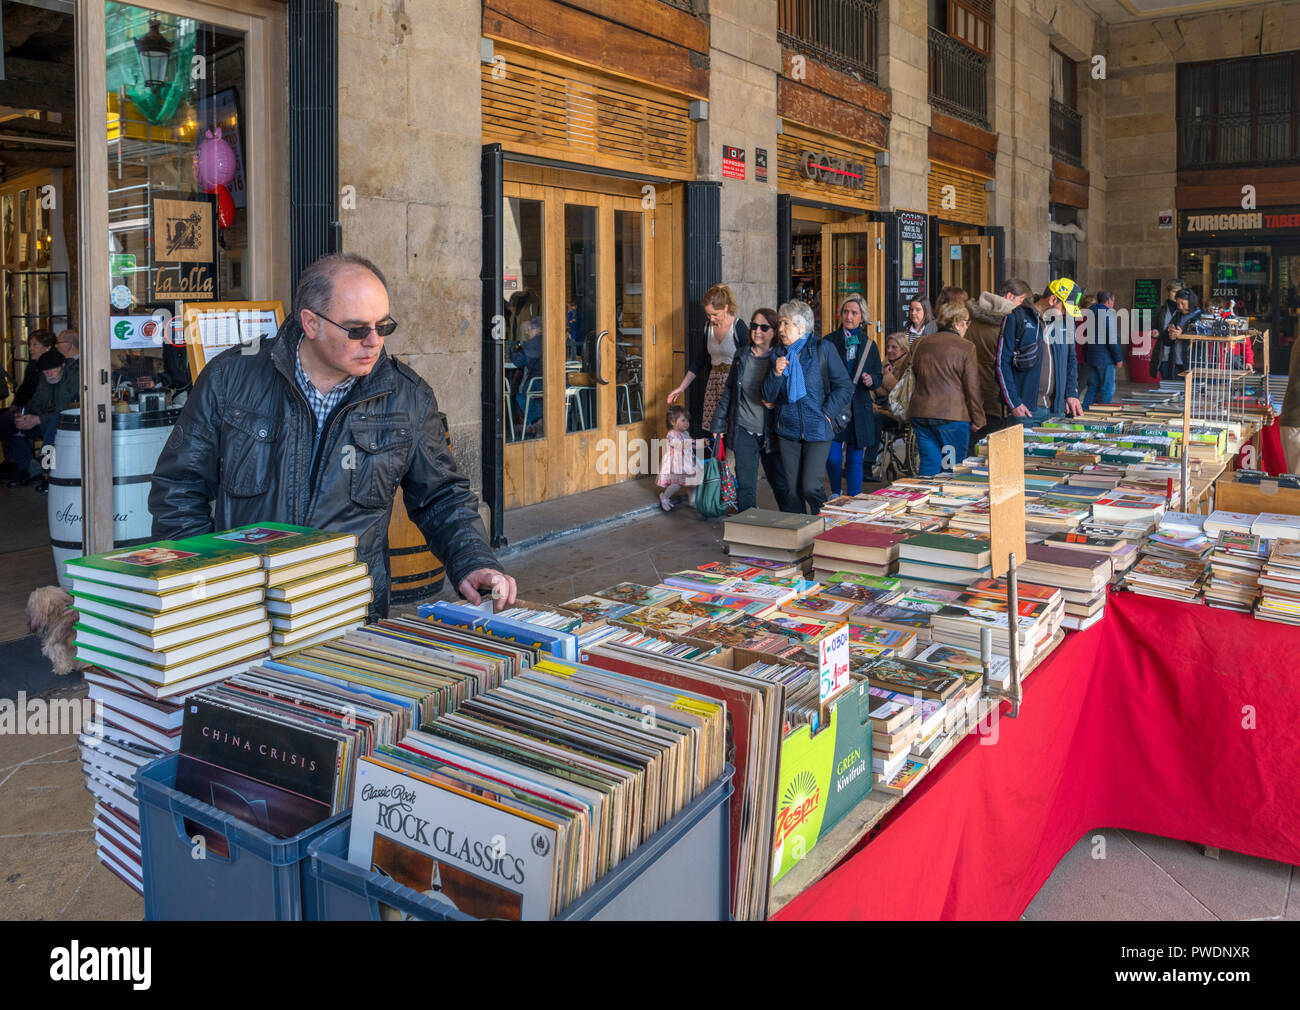 Man looking at second hand books and vinyl LP records on a market stall in Plaza Nueva, Casco Viejo, Bilbao, Basque Country, Spain - Stock Image